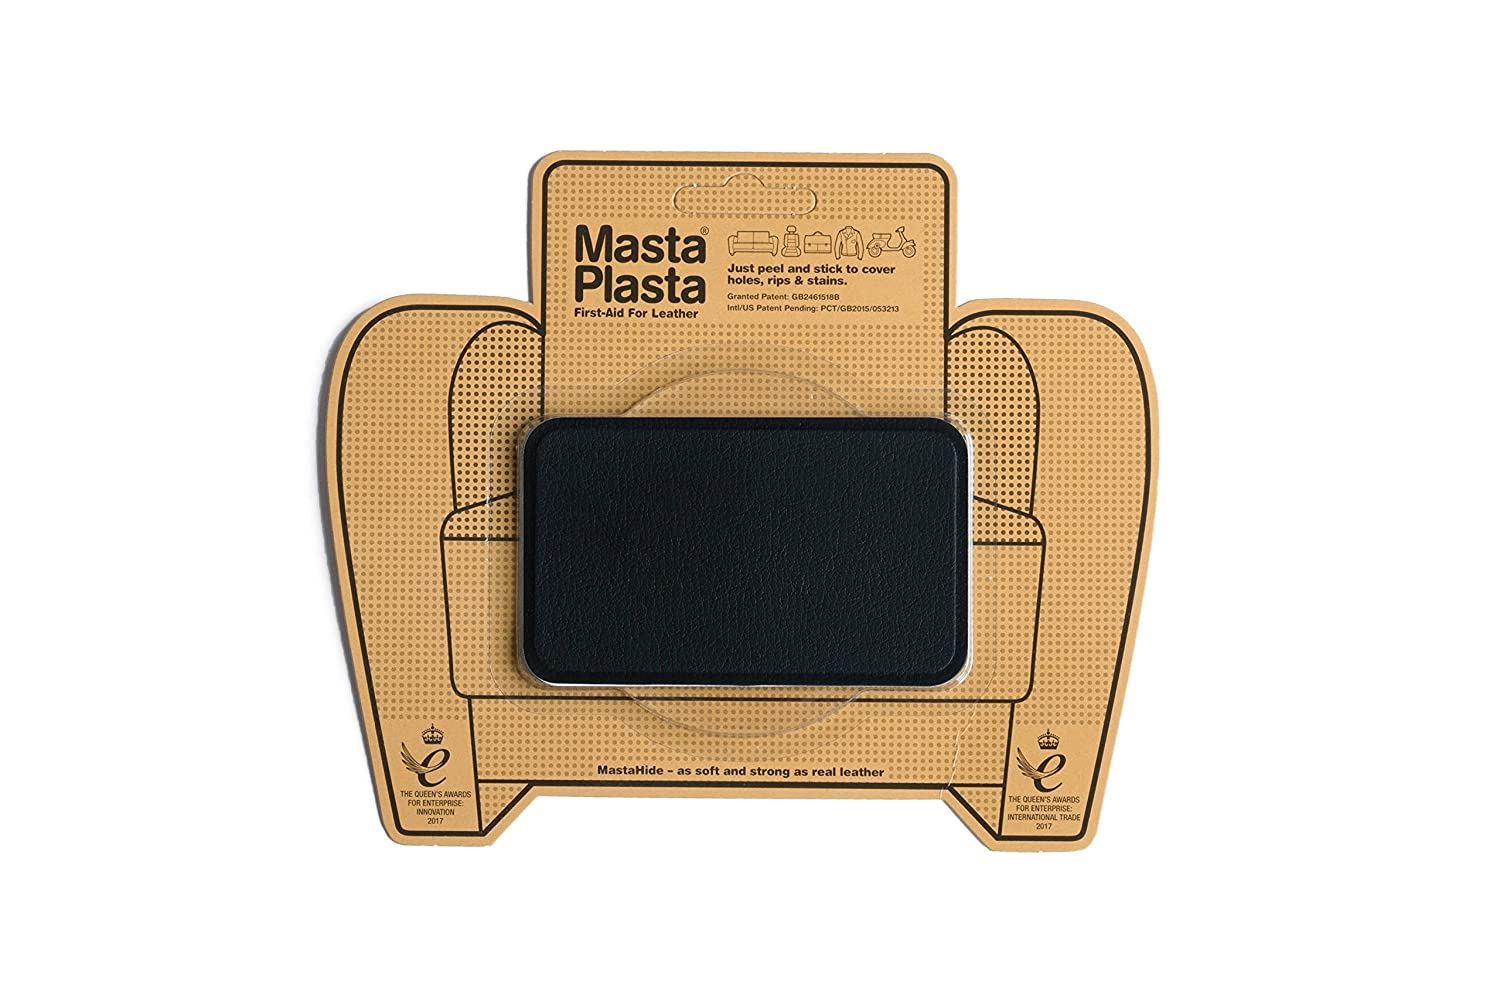 Black MastaPlasta Self-Adhesive Leather Repair Patches. Choose size/design. First-aid for sofas, car seats, handbags, jackets etc. (BLACK SMALL CIRCLE 5cmx5cm) MastaPlasta Ltd MPSCIRCLEBL